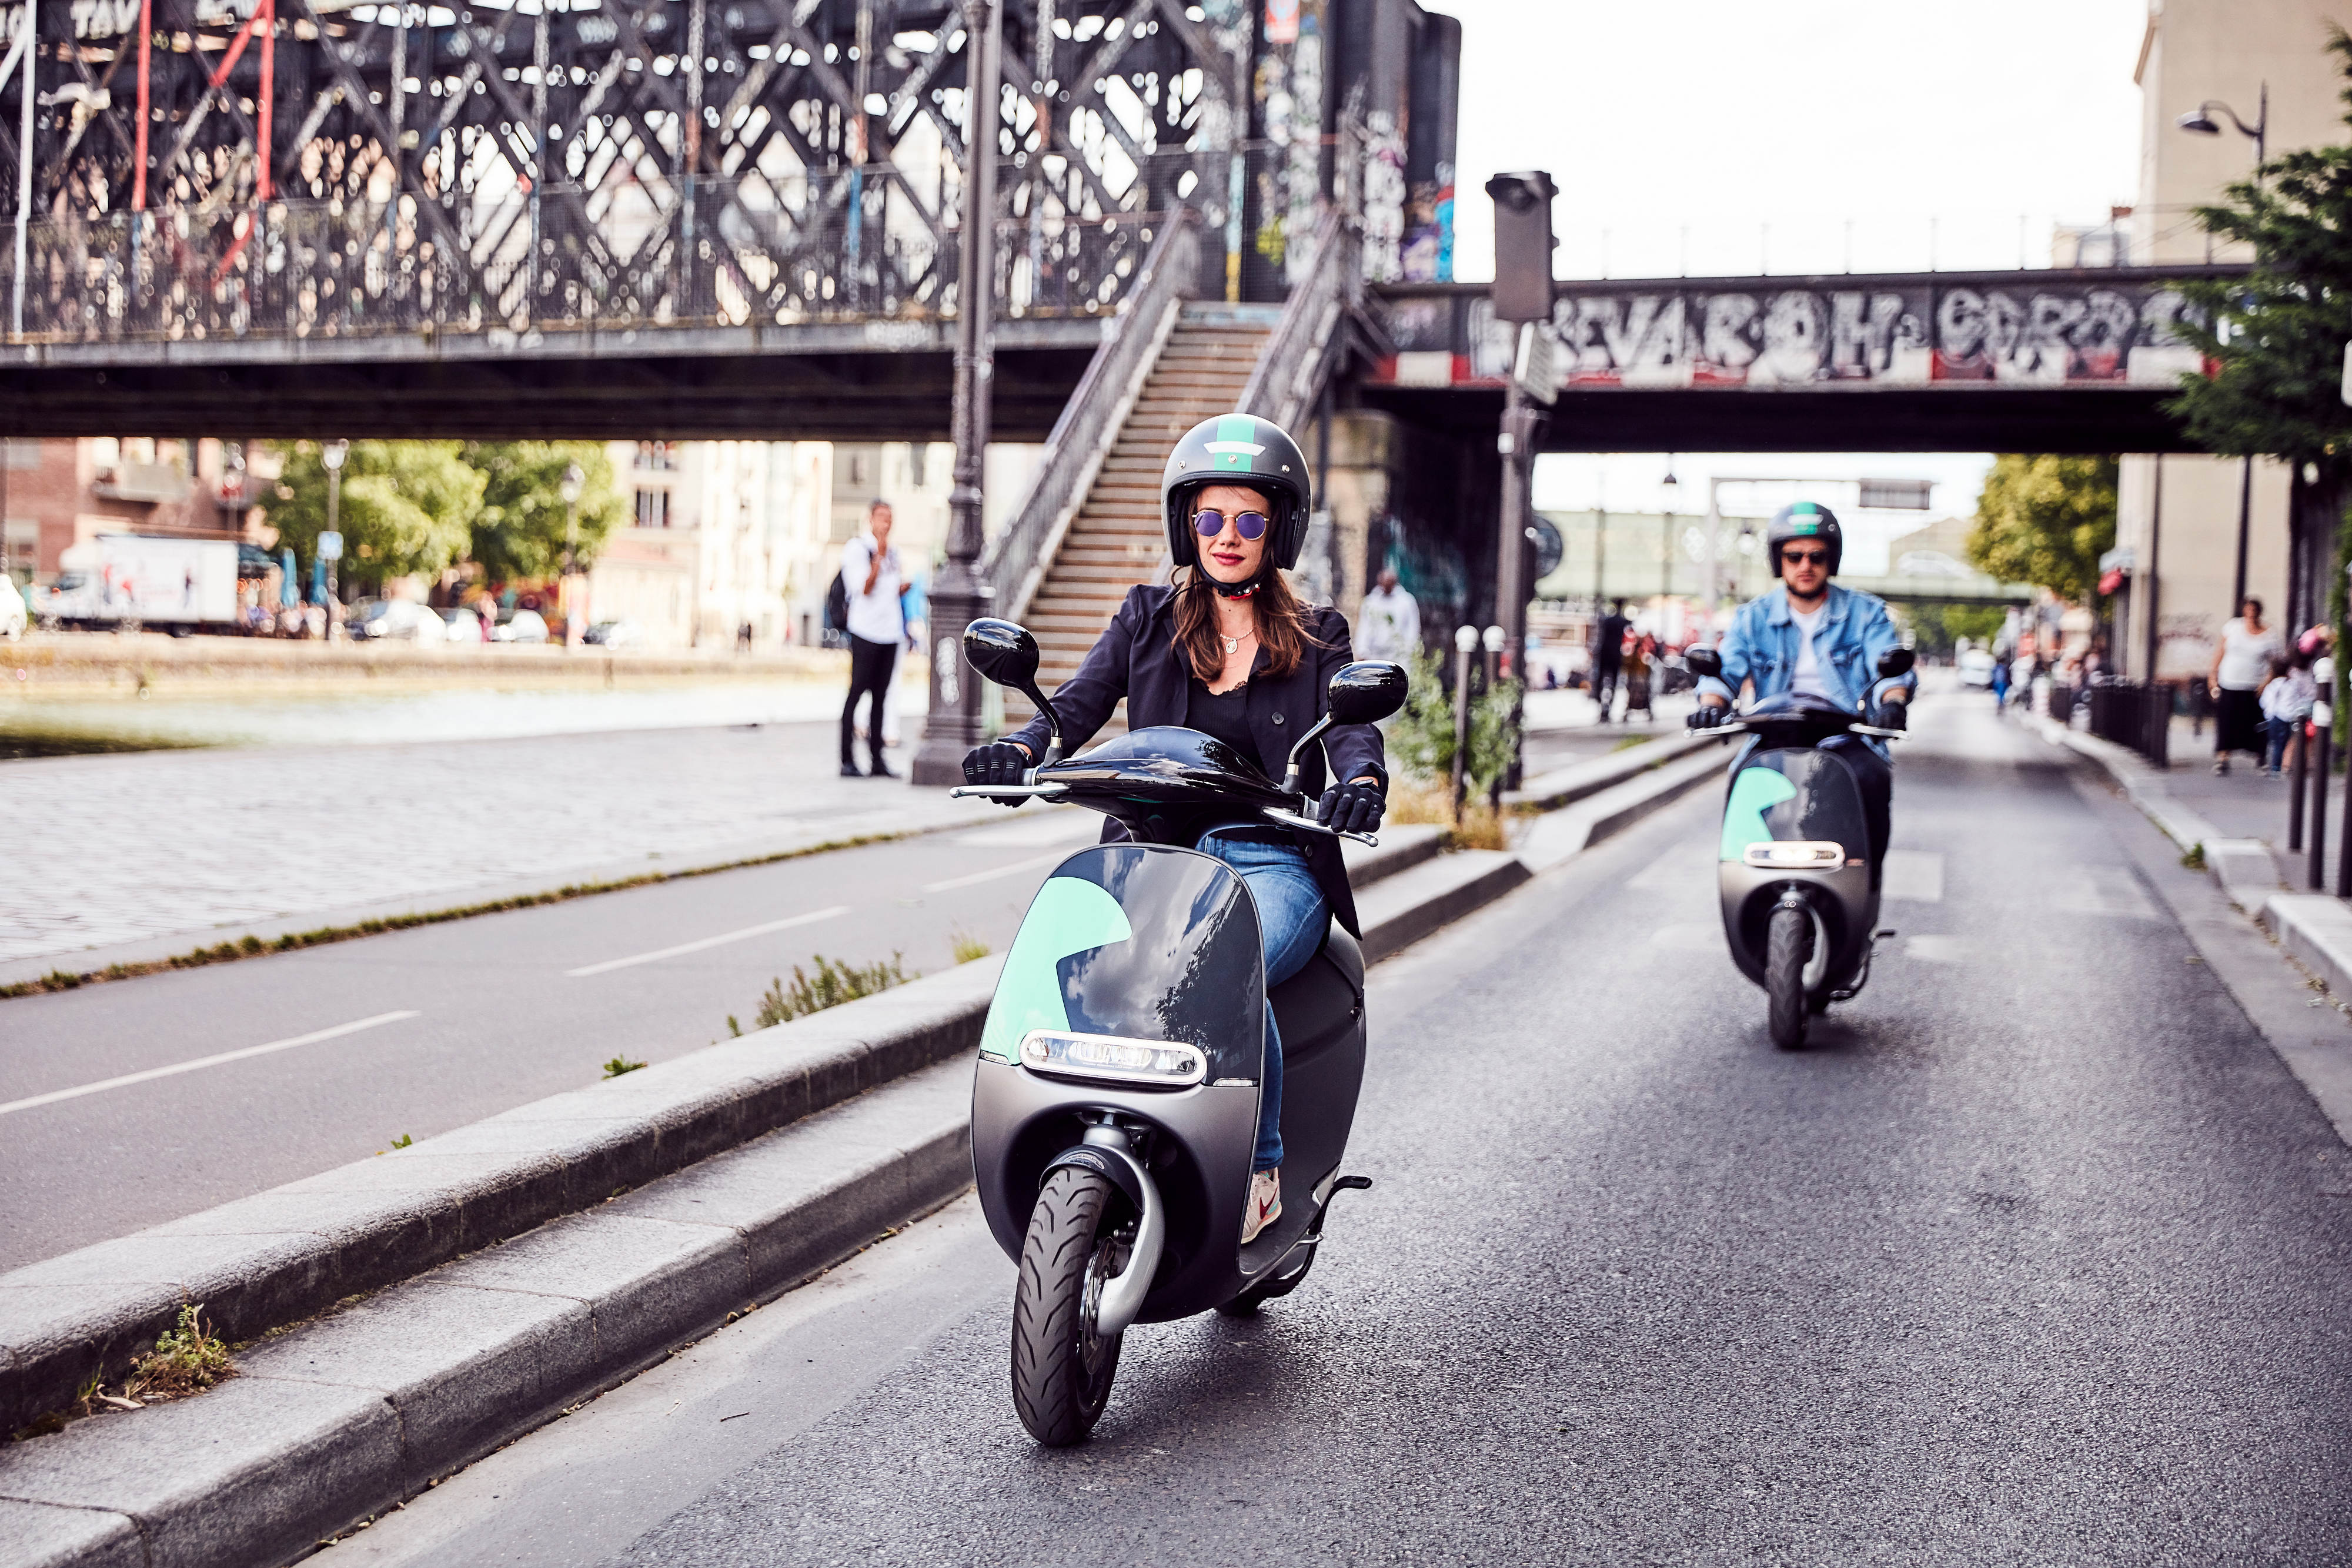 Coup electric scooter in Paris